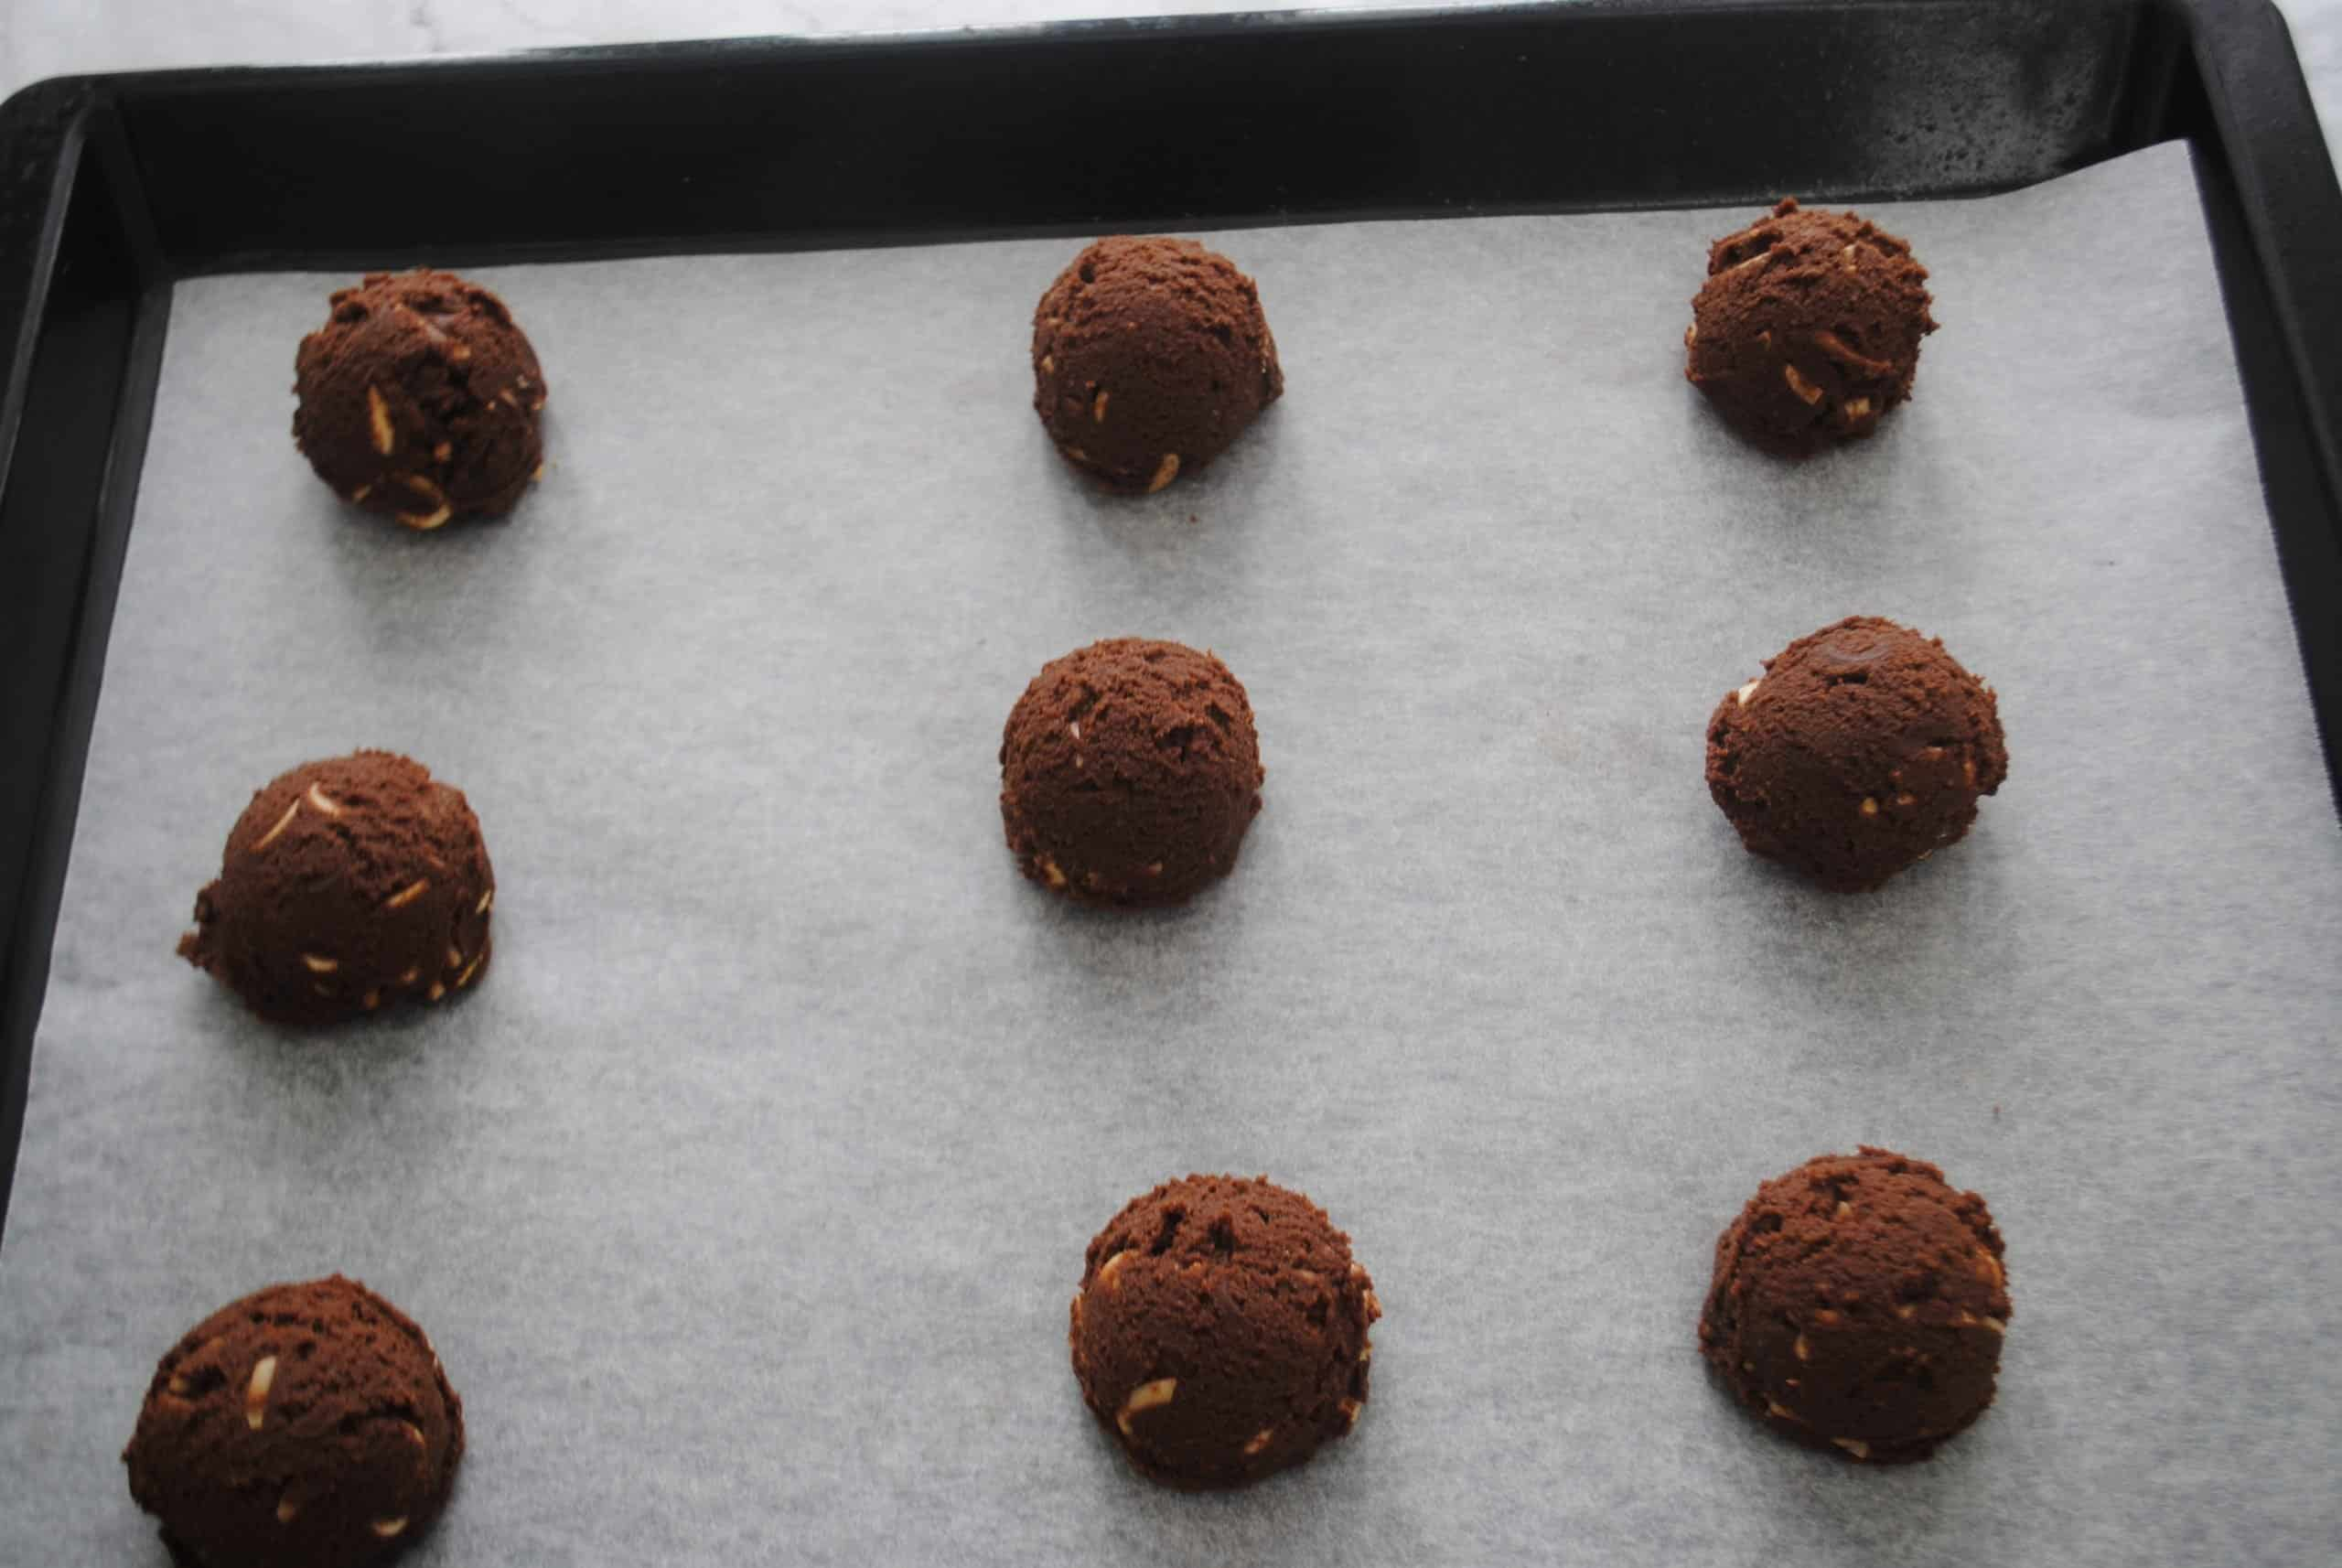 double chocolate almond cookies scooped into balls on baking paper on a baking tray